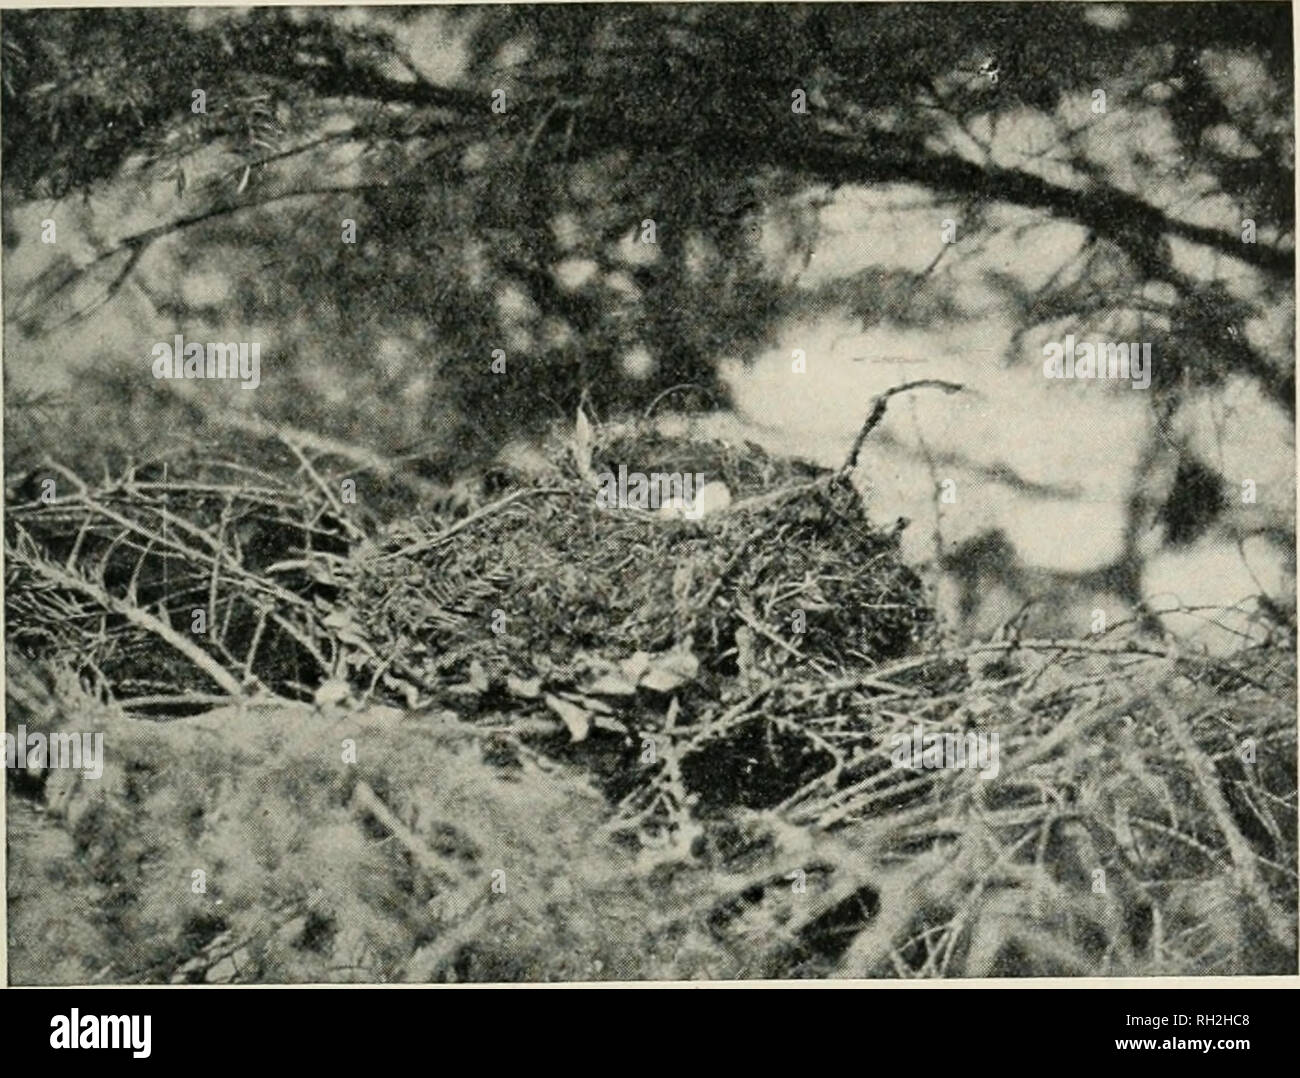 . British birds. Birds. VOL. VI.] NOTES. 15 diameter of the cup of the nest is 3 inches. At first sight it resembles a half-completed Blackbird's nest. It should be remarked that the nest was rather more shut in than appears. NEST OF A REDBREAST WITHIN THAT OF A SONG-THRUSH. (Photographed by T>. G. Gamett.) in the photograph, as it was necessary to bend back some branches so as to admit enough light for photographic purposes. D. G. Garnett. CHAFFINCH'S NEST DECORATED WITH PAPER. A PAIR of Chaffinches (Frmgilla c. ccelebs) have built a nest upon the side of a tree trunk in the St. Nicholas G - Stock Image